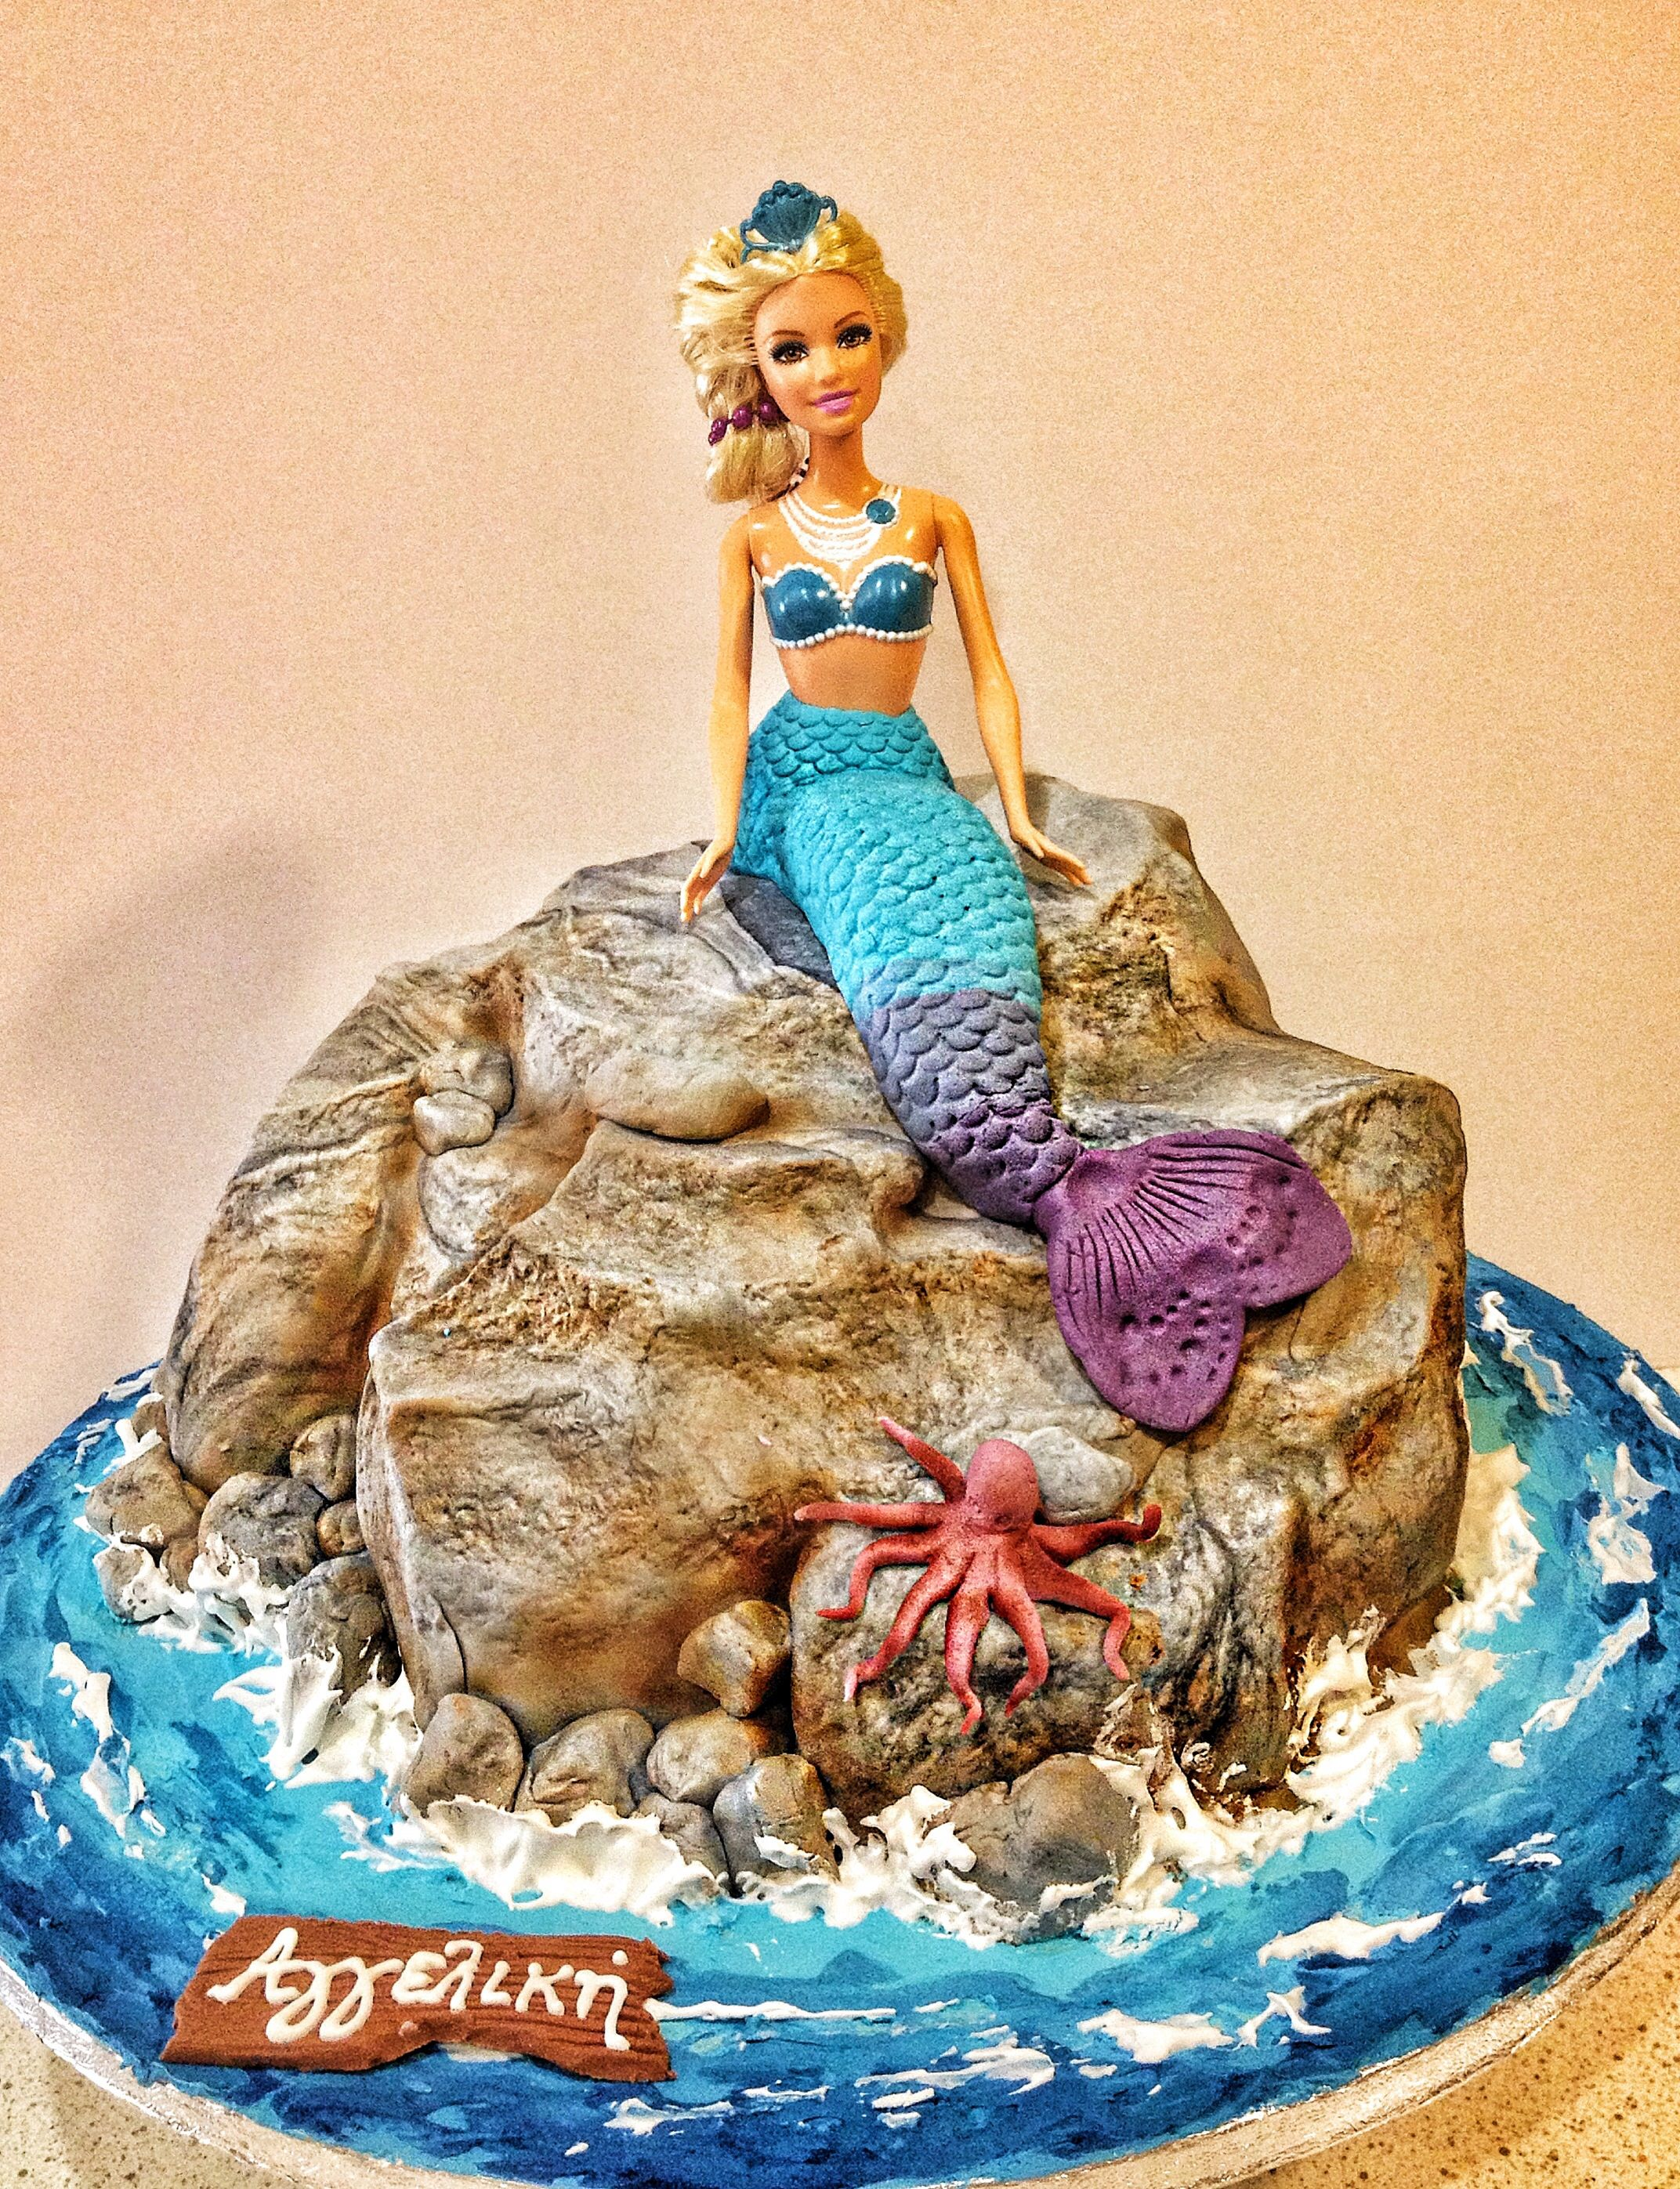 Barbie Merlia on a rock birthday cake